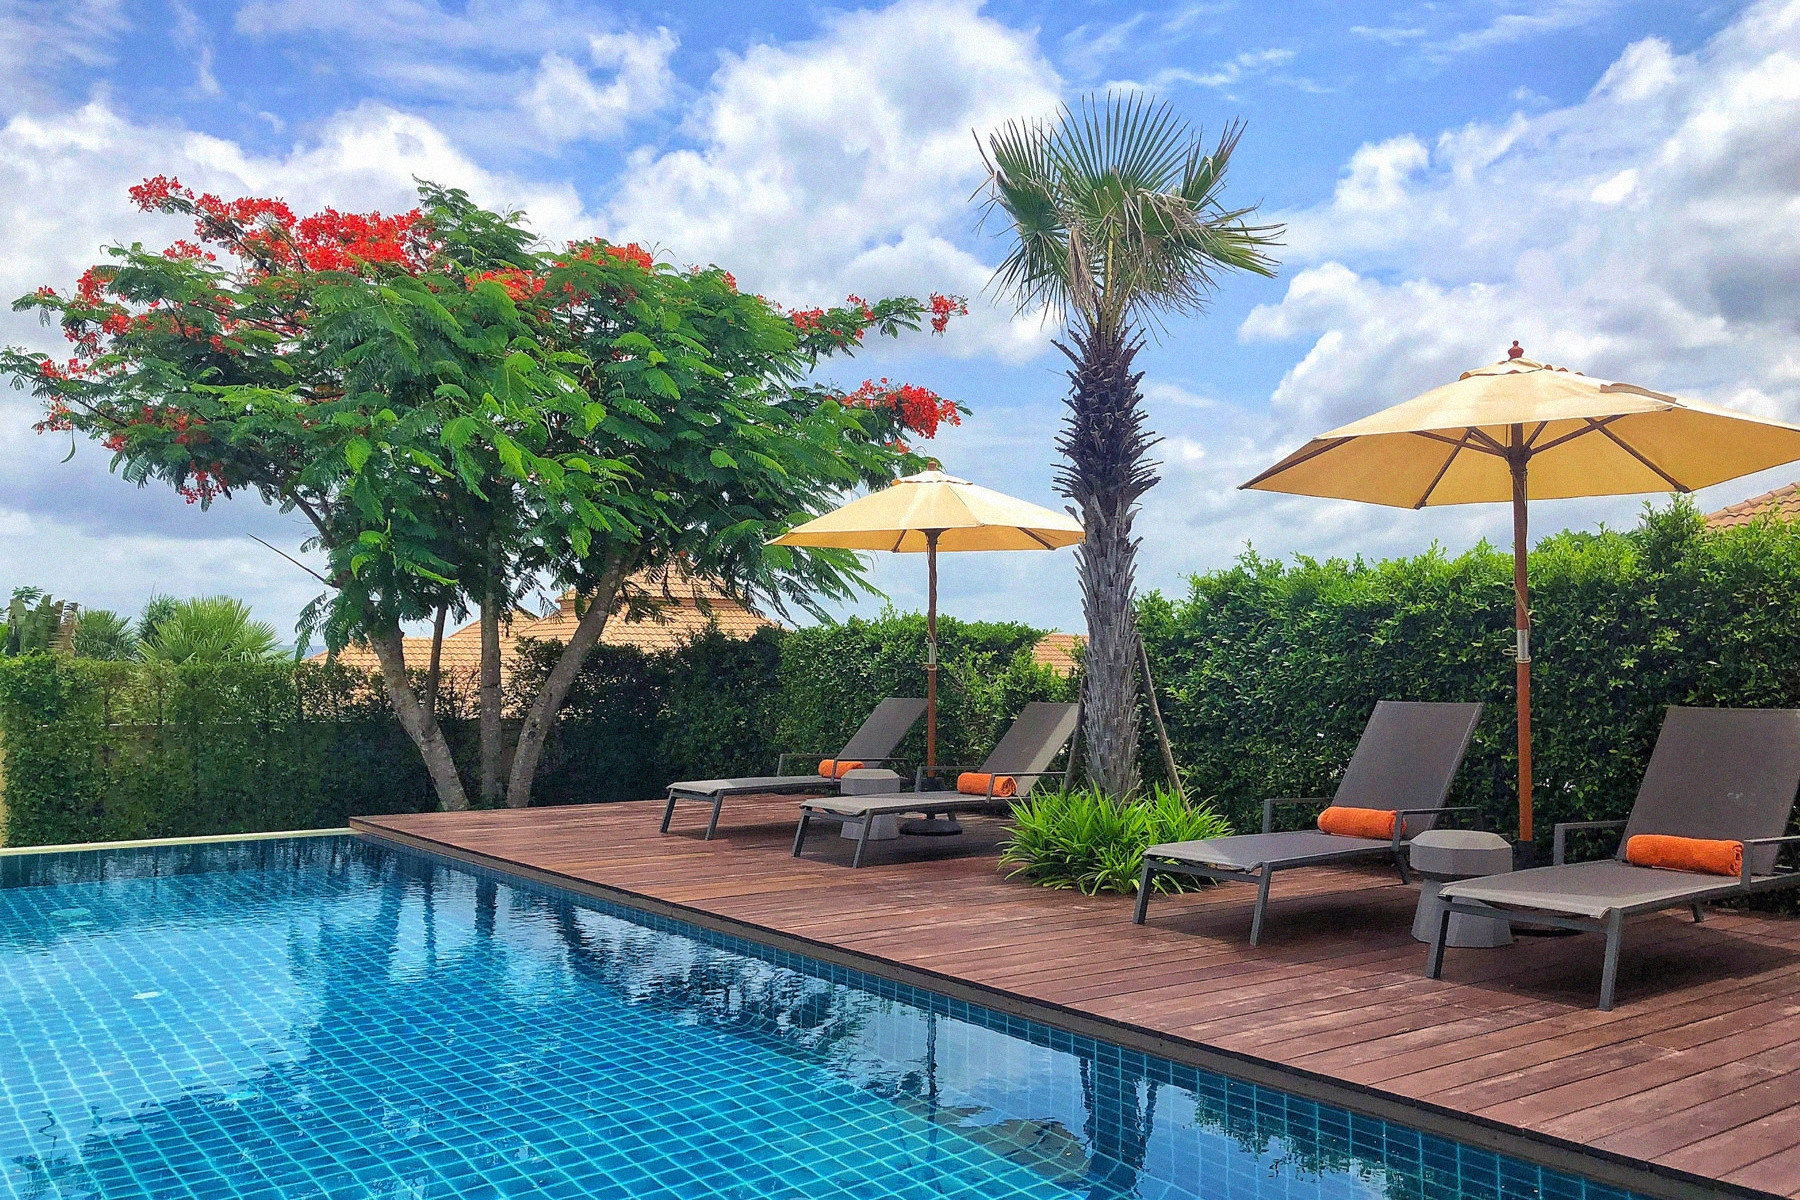 Hua Hin - Visit our brand new 3-bedroom pool villa and enjoy a never-to-be forgotten holiday in the less hectic coastal town of Hua Hin. This seaside resort only 2.5 hours away from the capital became a fashionable escape for residents of Bangkok after the 1920, when the Thai royal family built palaces here.